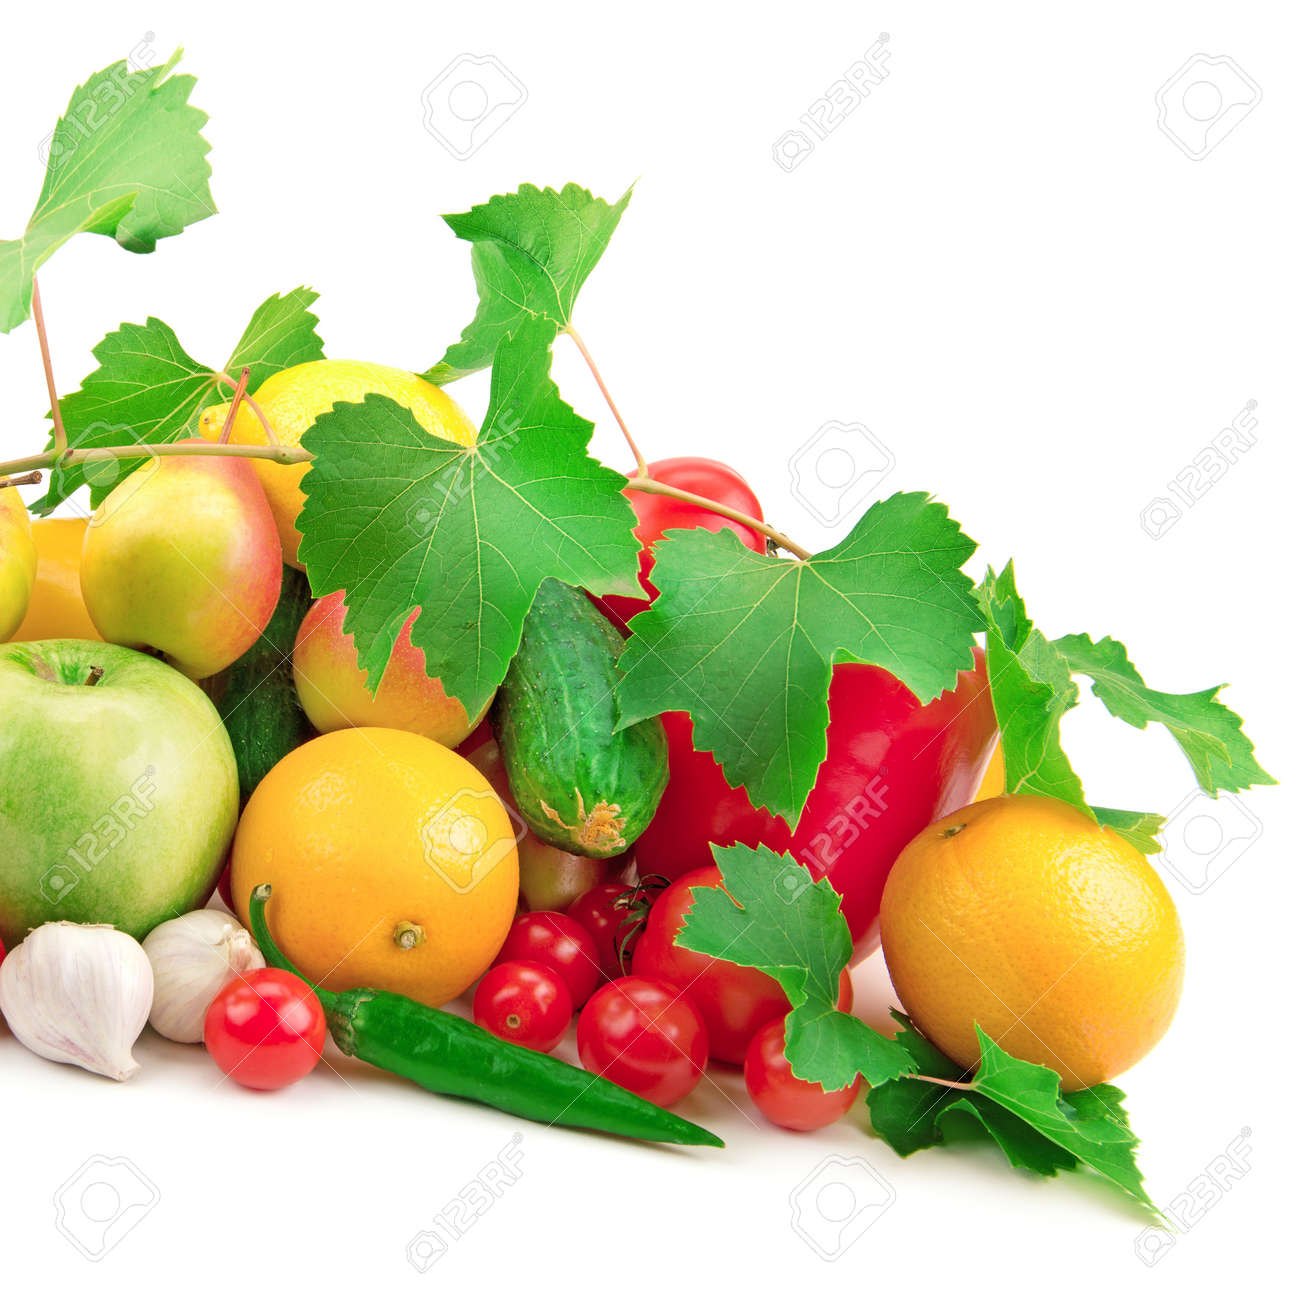 composition of fruits and vegetables Stock Photo - 16986755